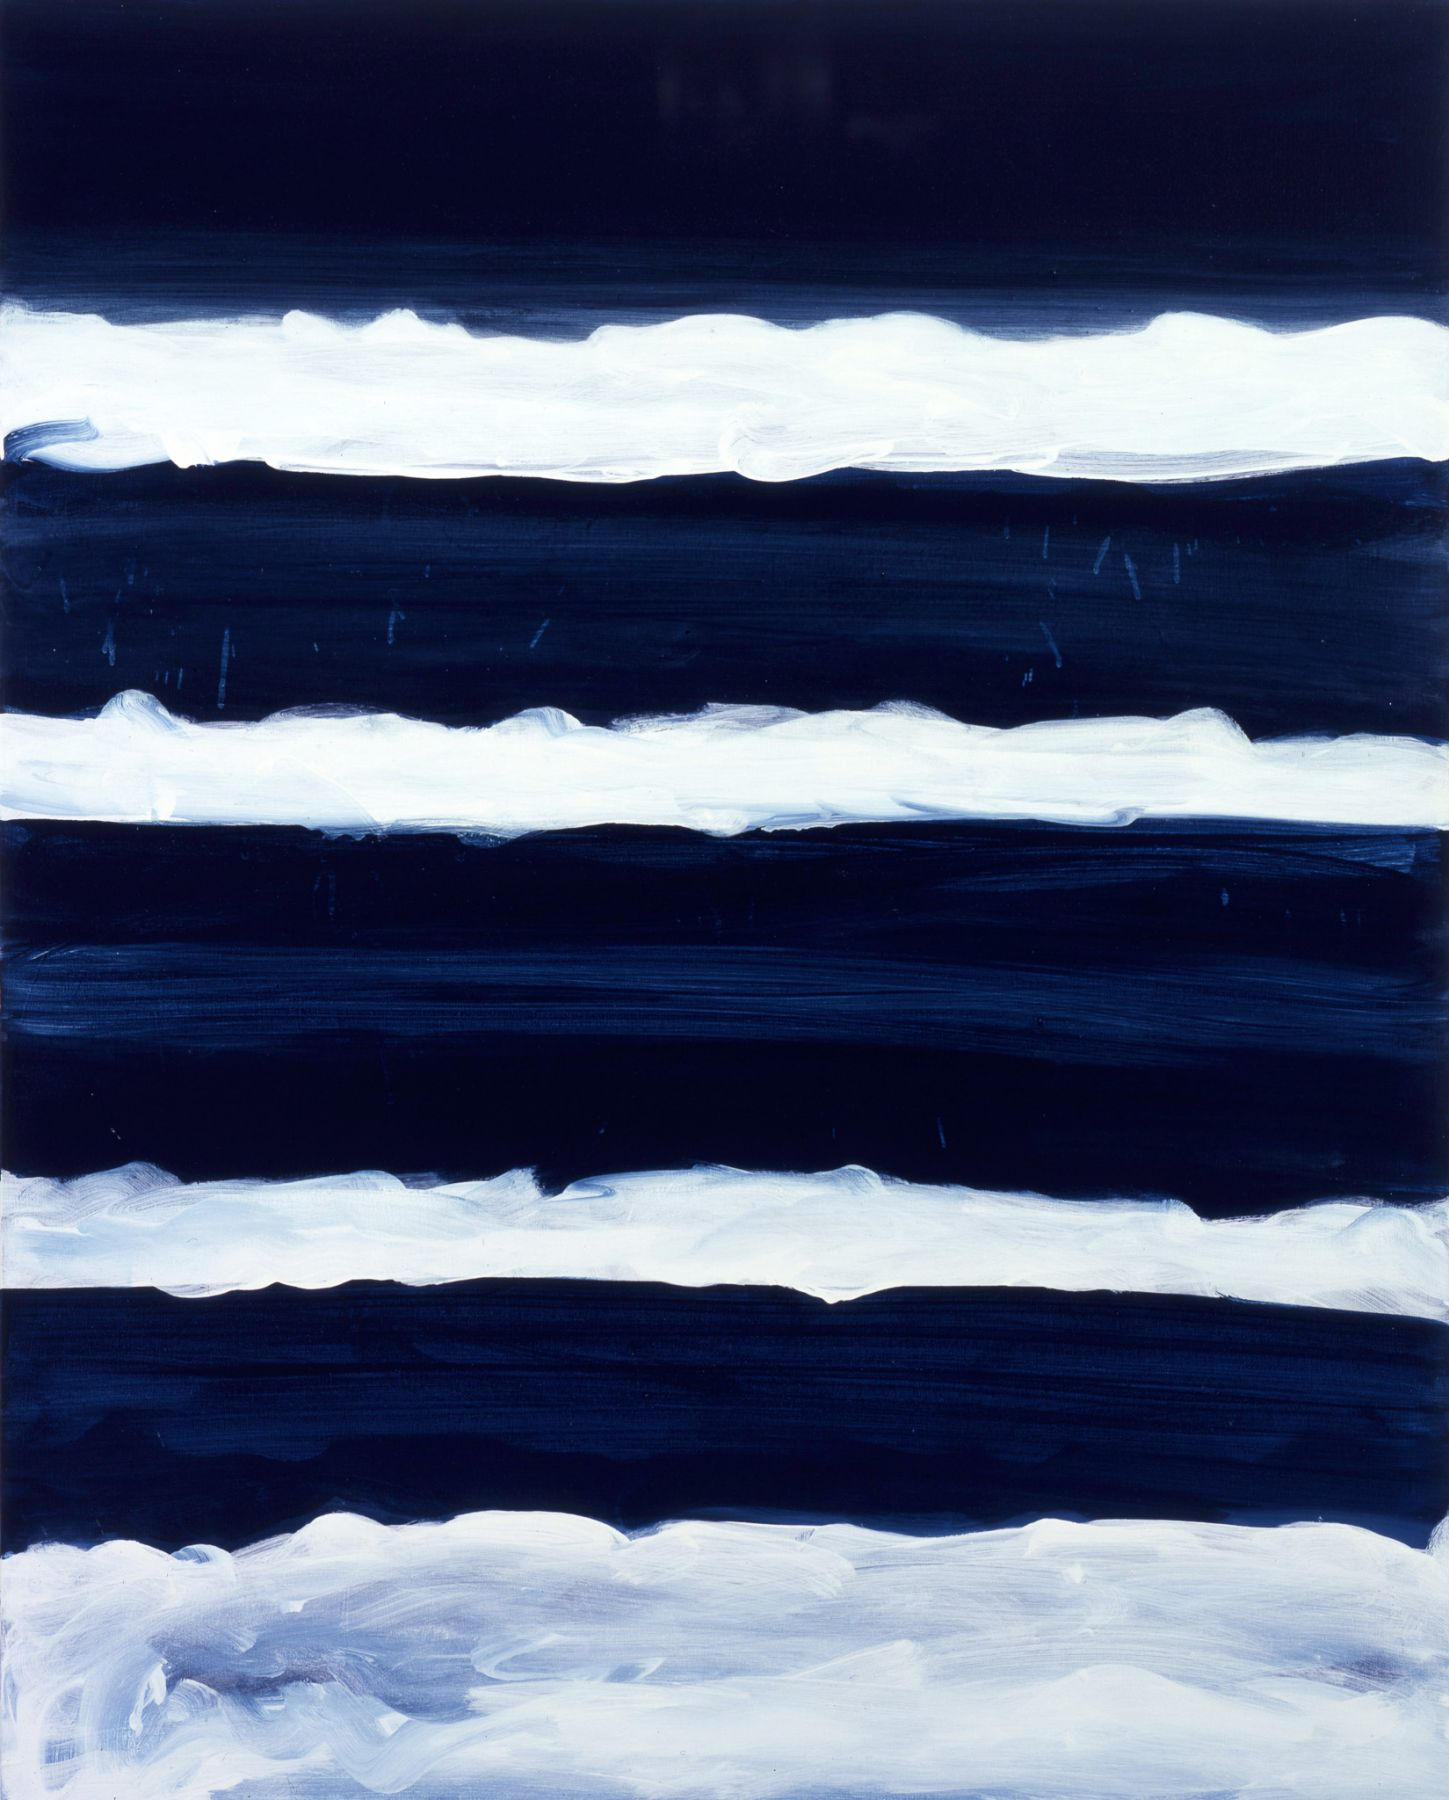 Mary Heilmann, Night Swimmer, 1998